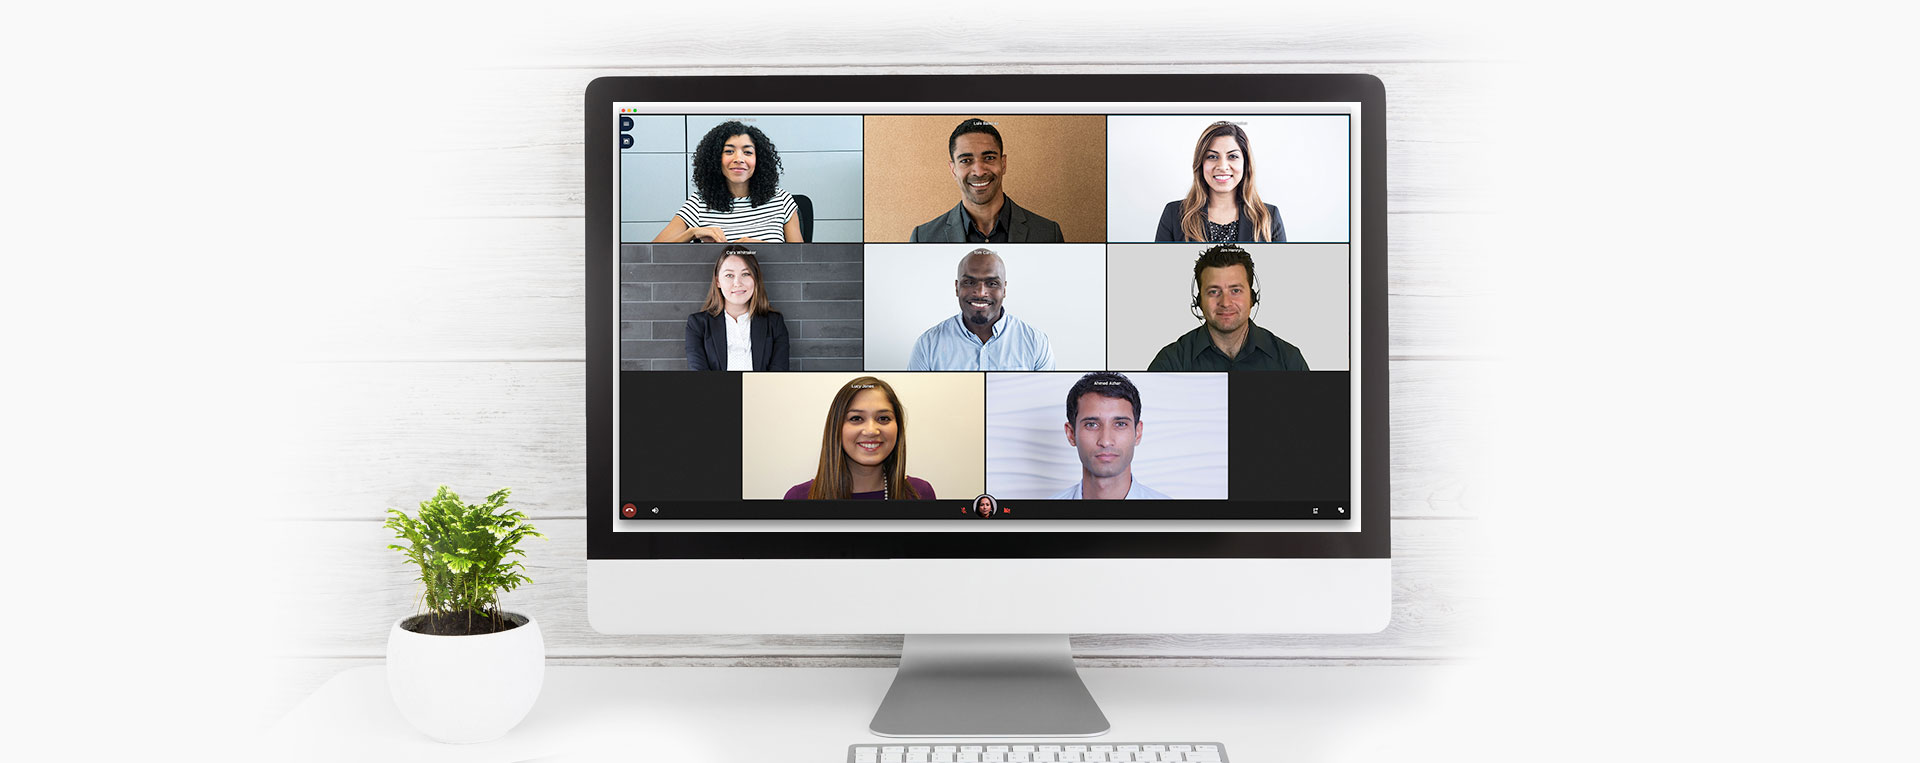 Vidyo video conferencing solutions